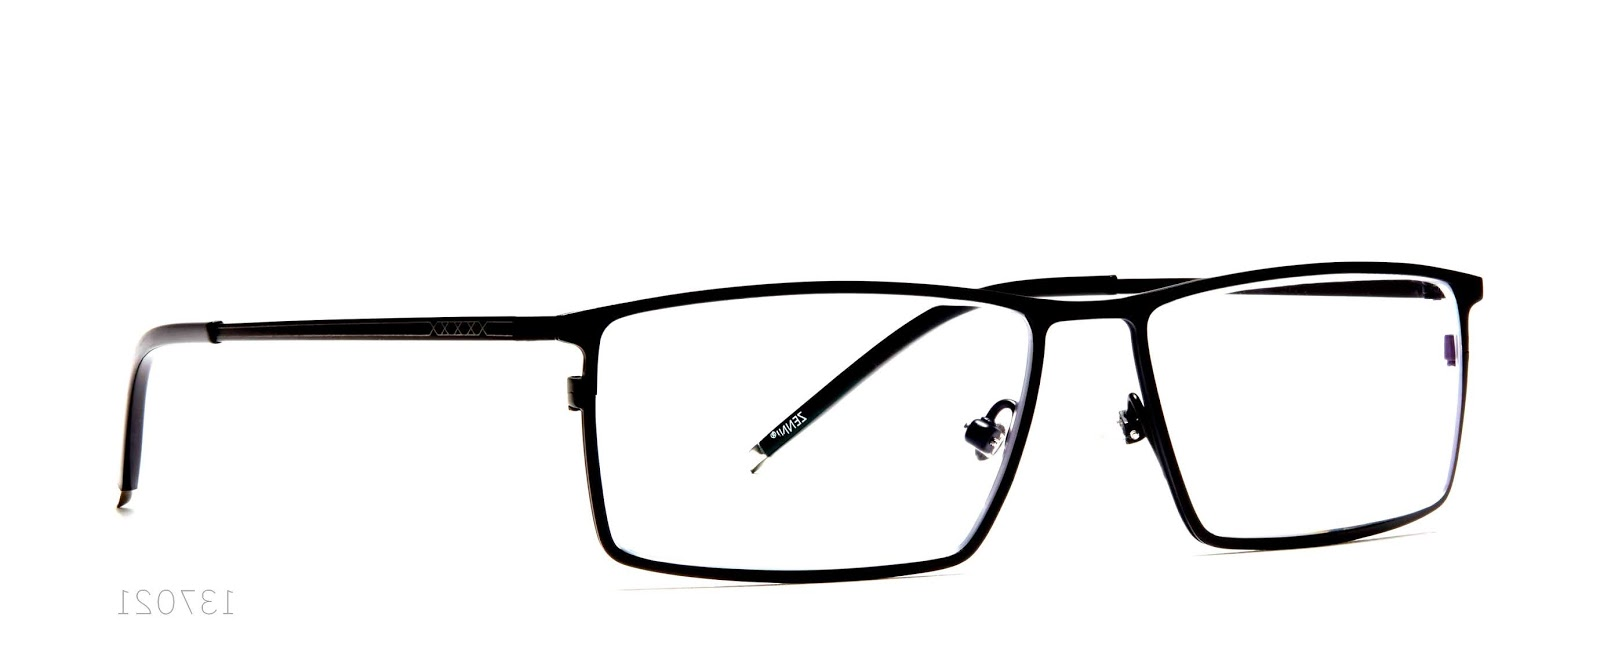 ~: Tips Choosing Glasses Frame And Lenses